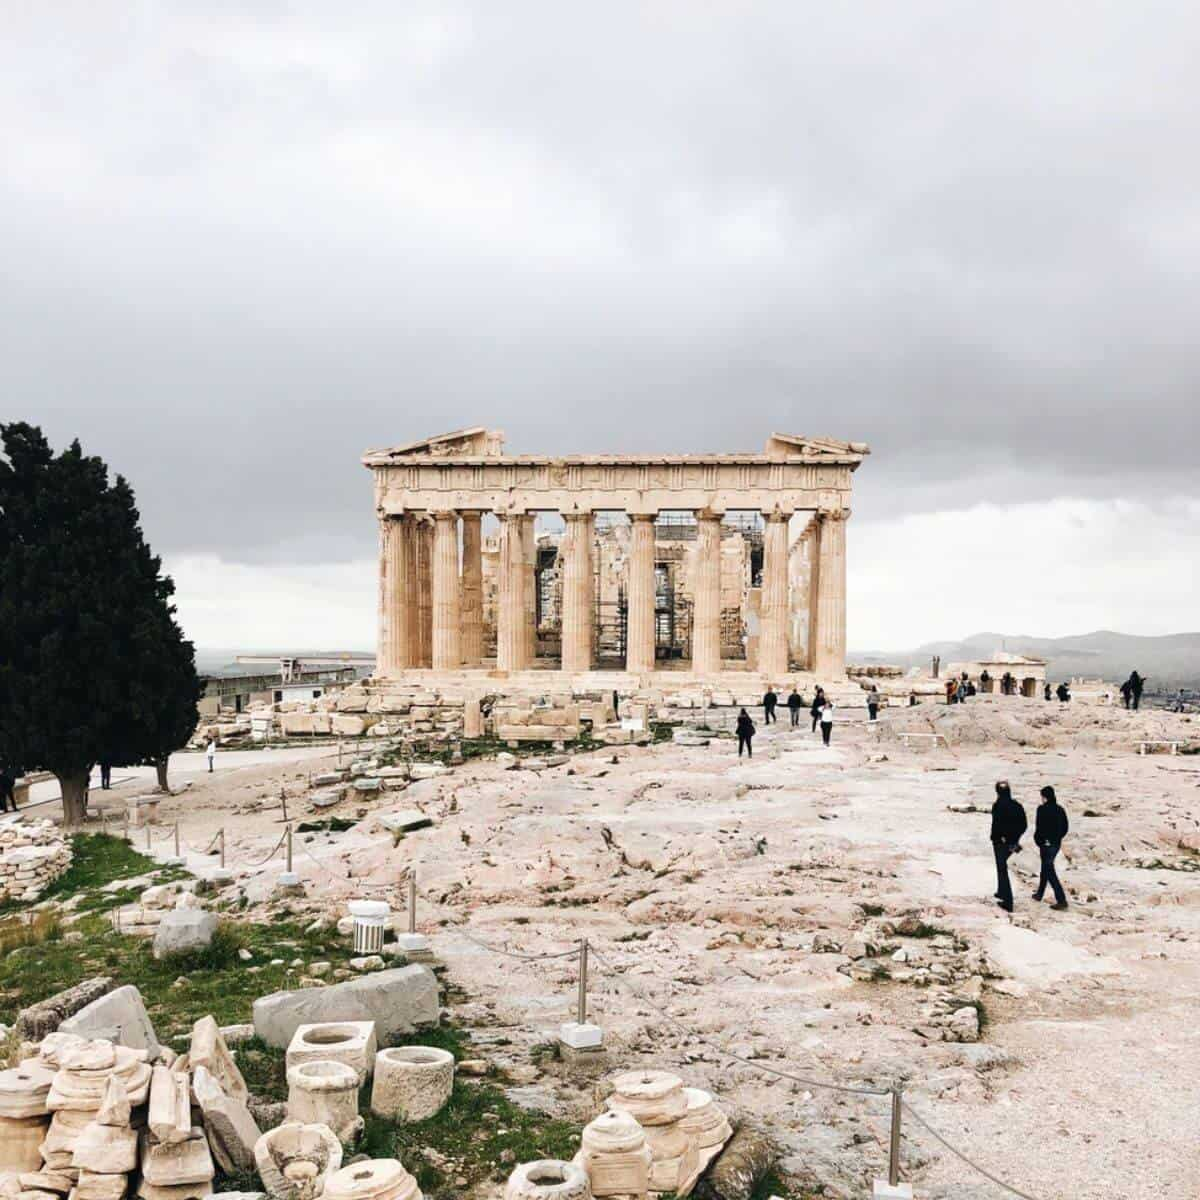 People walking towards Acropolis of Athens in Greece on a cloudy day.